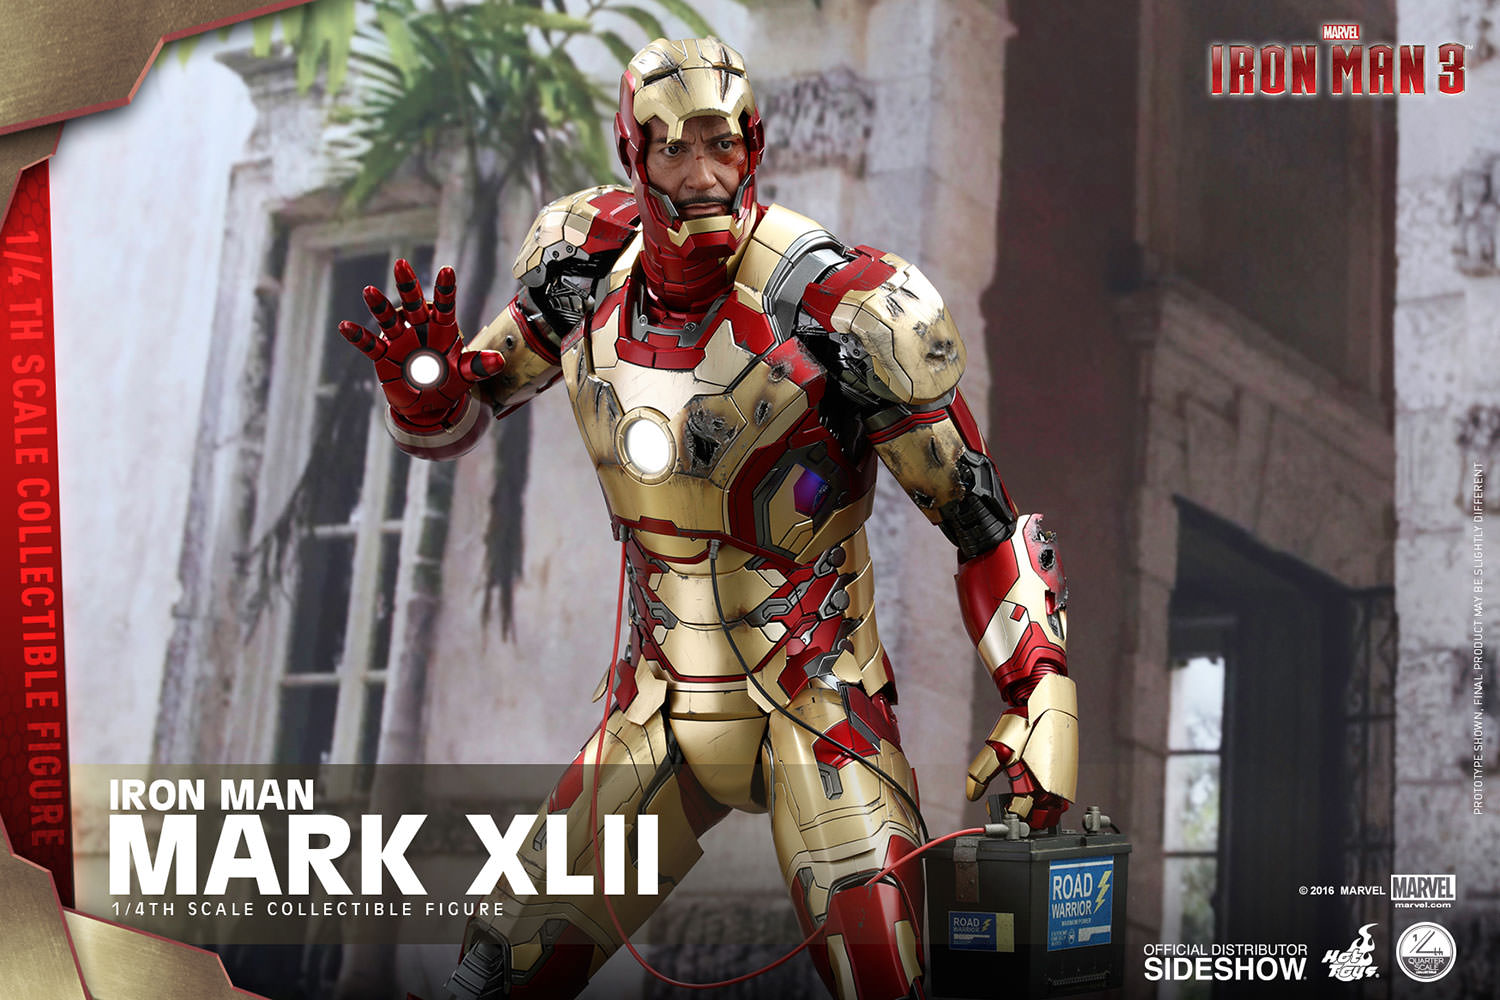 marvel iron man mark xlii quarter scale figure by hot toys